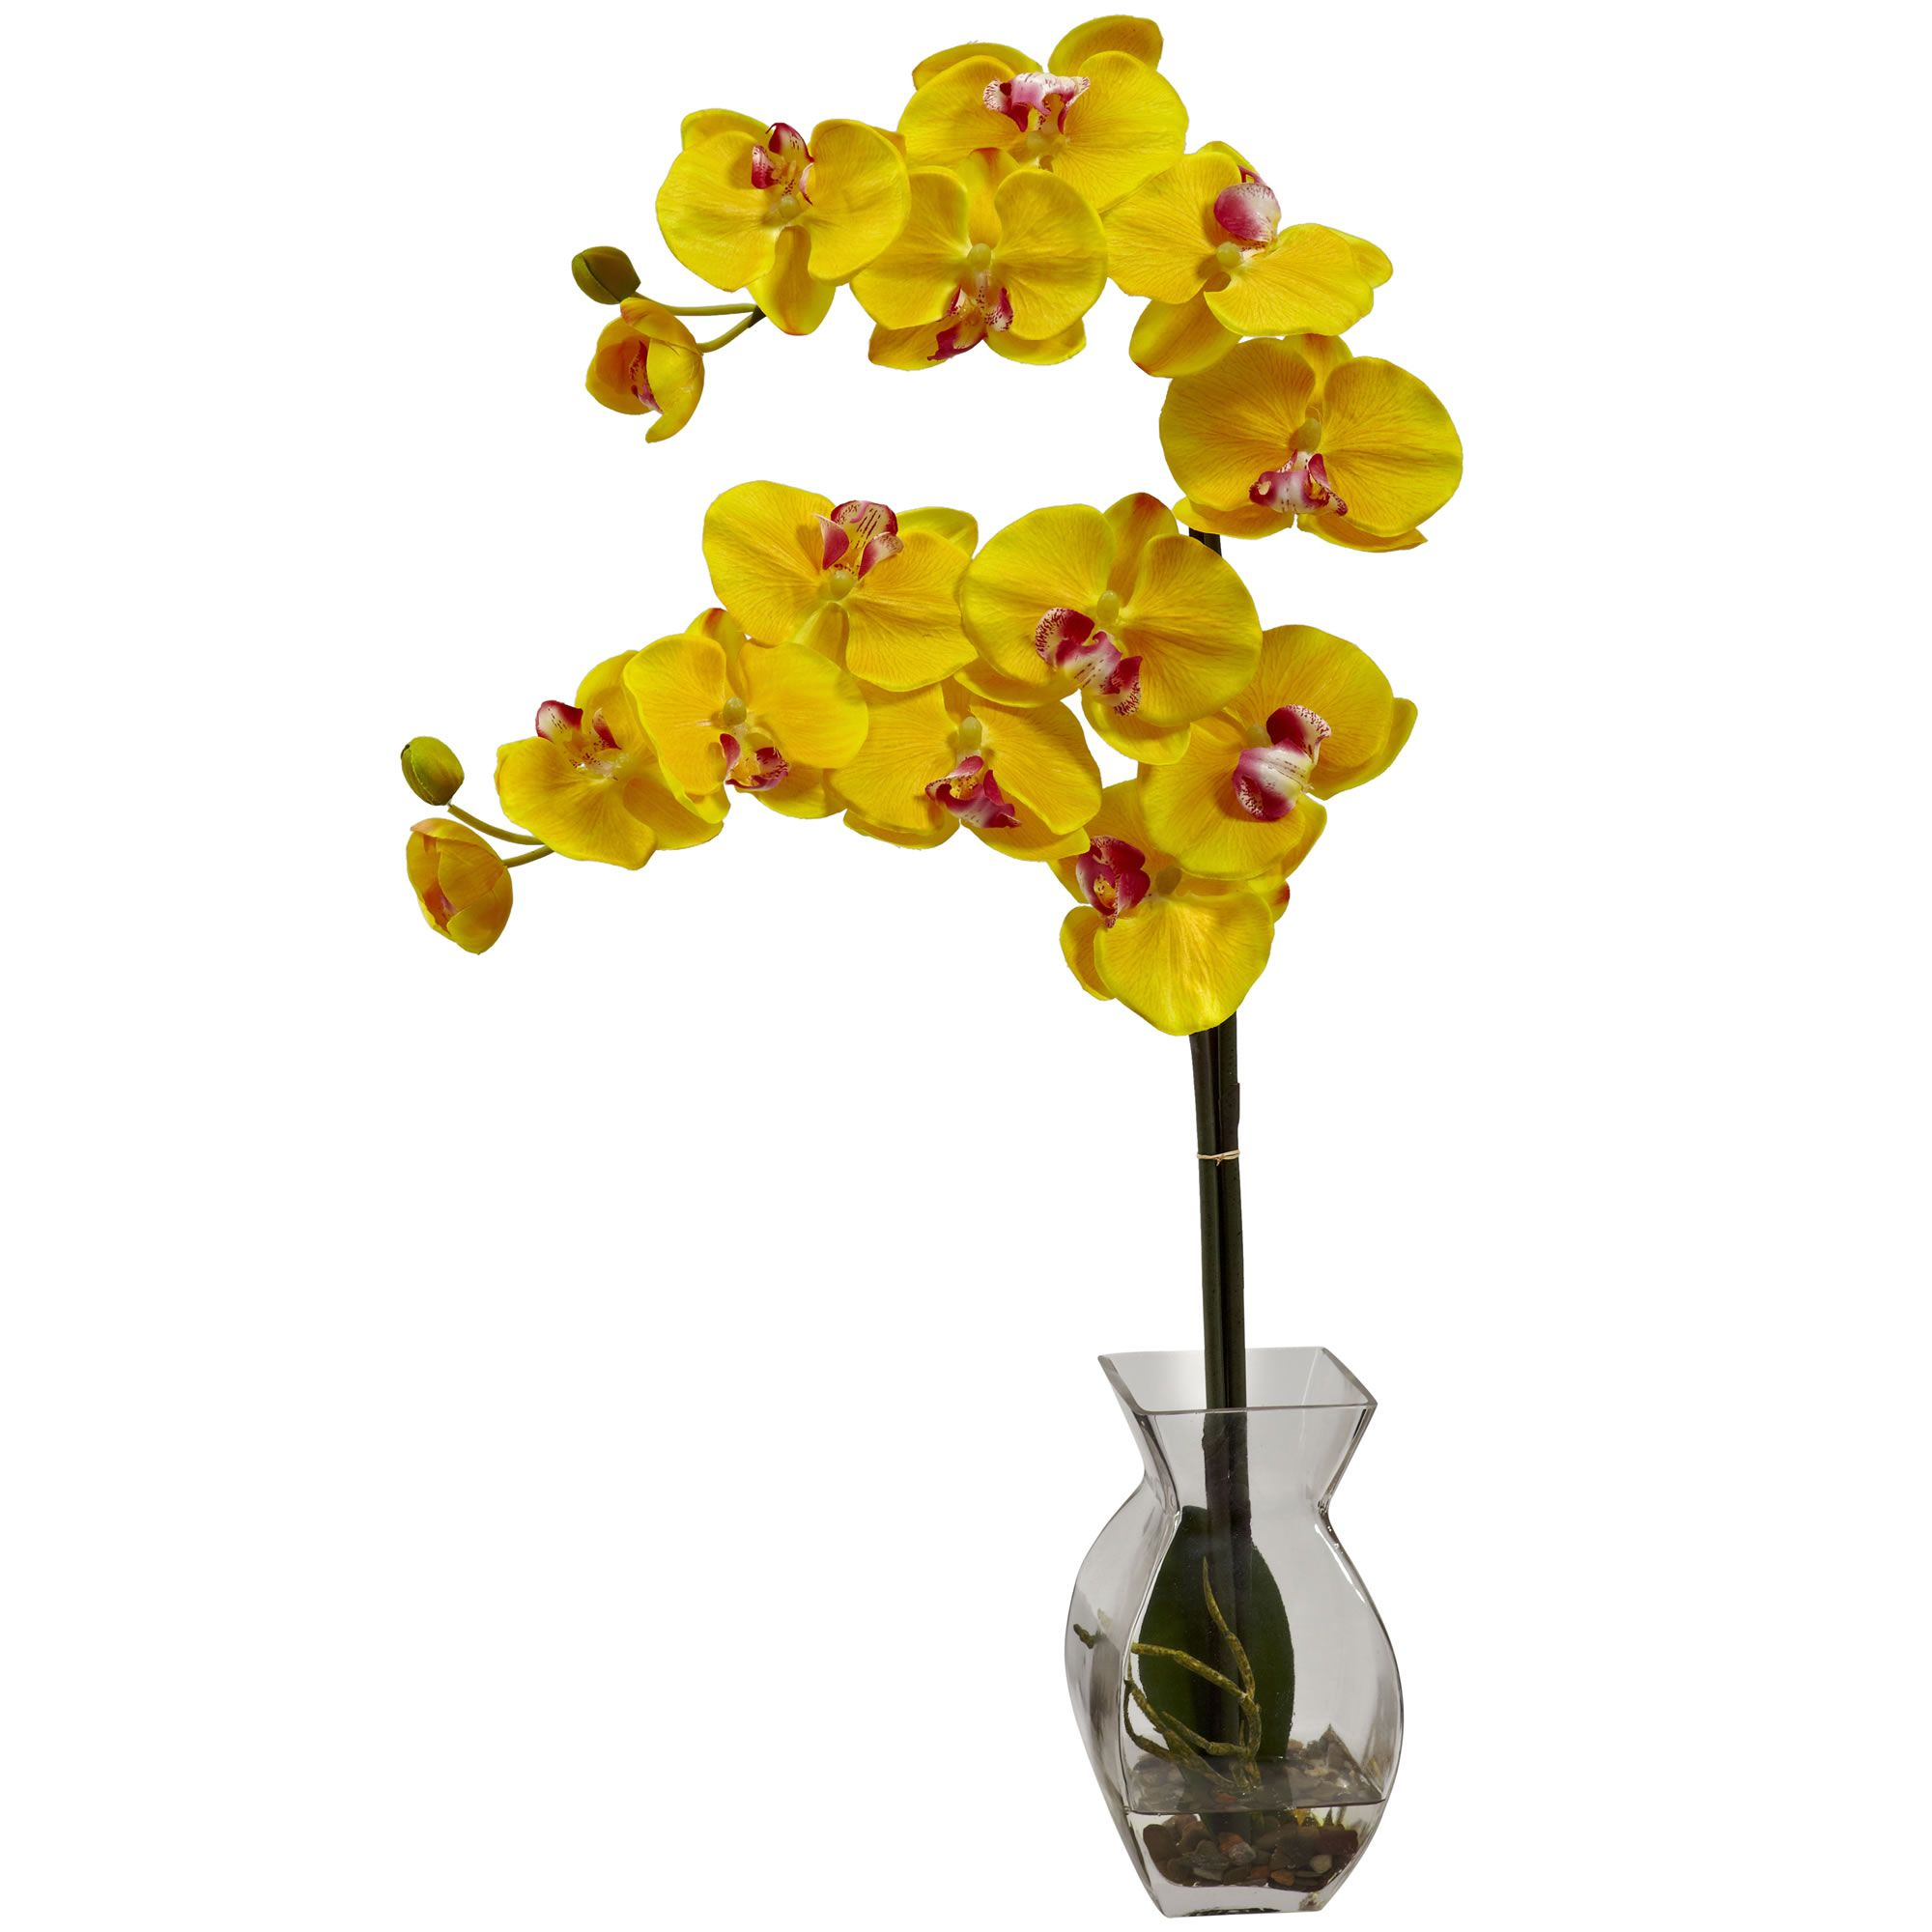 24 H Faux Yellow Phalaenopsis Orchid In Vase Arrangement With Images Orchid Vase Silk Flower Arrangements Orchids In Water